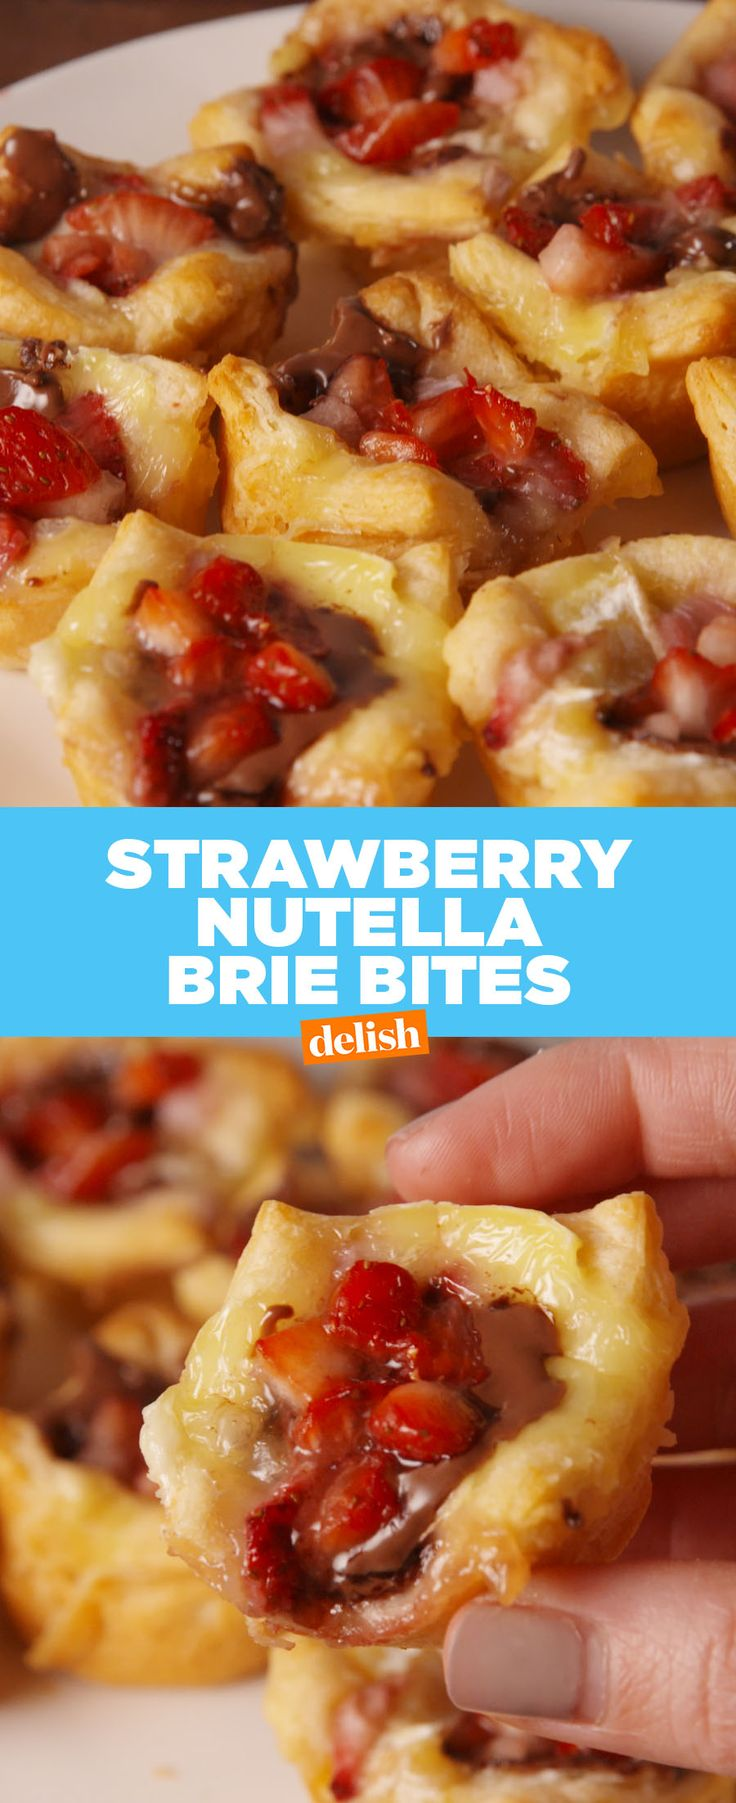 These Nutella Strawberry Brie Bites will be demolished in SECONDS. Get the recipe at Delish.com. #nutella #strawberry #brie #cheese #fruit #recipe #easyrecipes #chocolate #appetizer #dessert